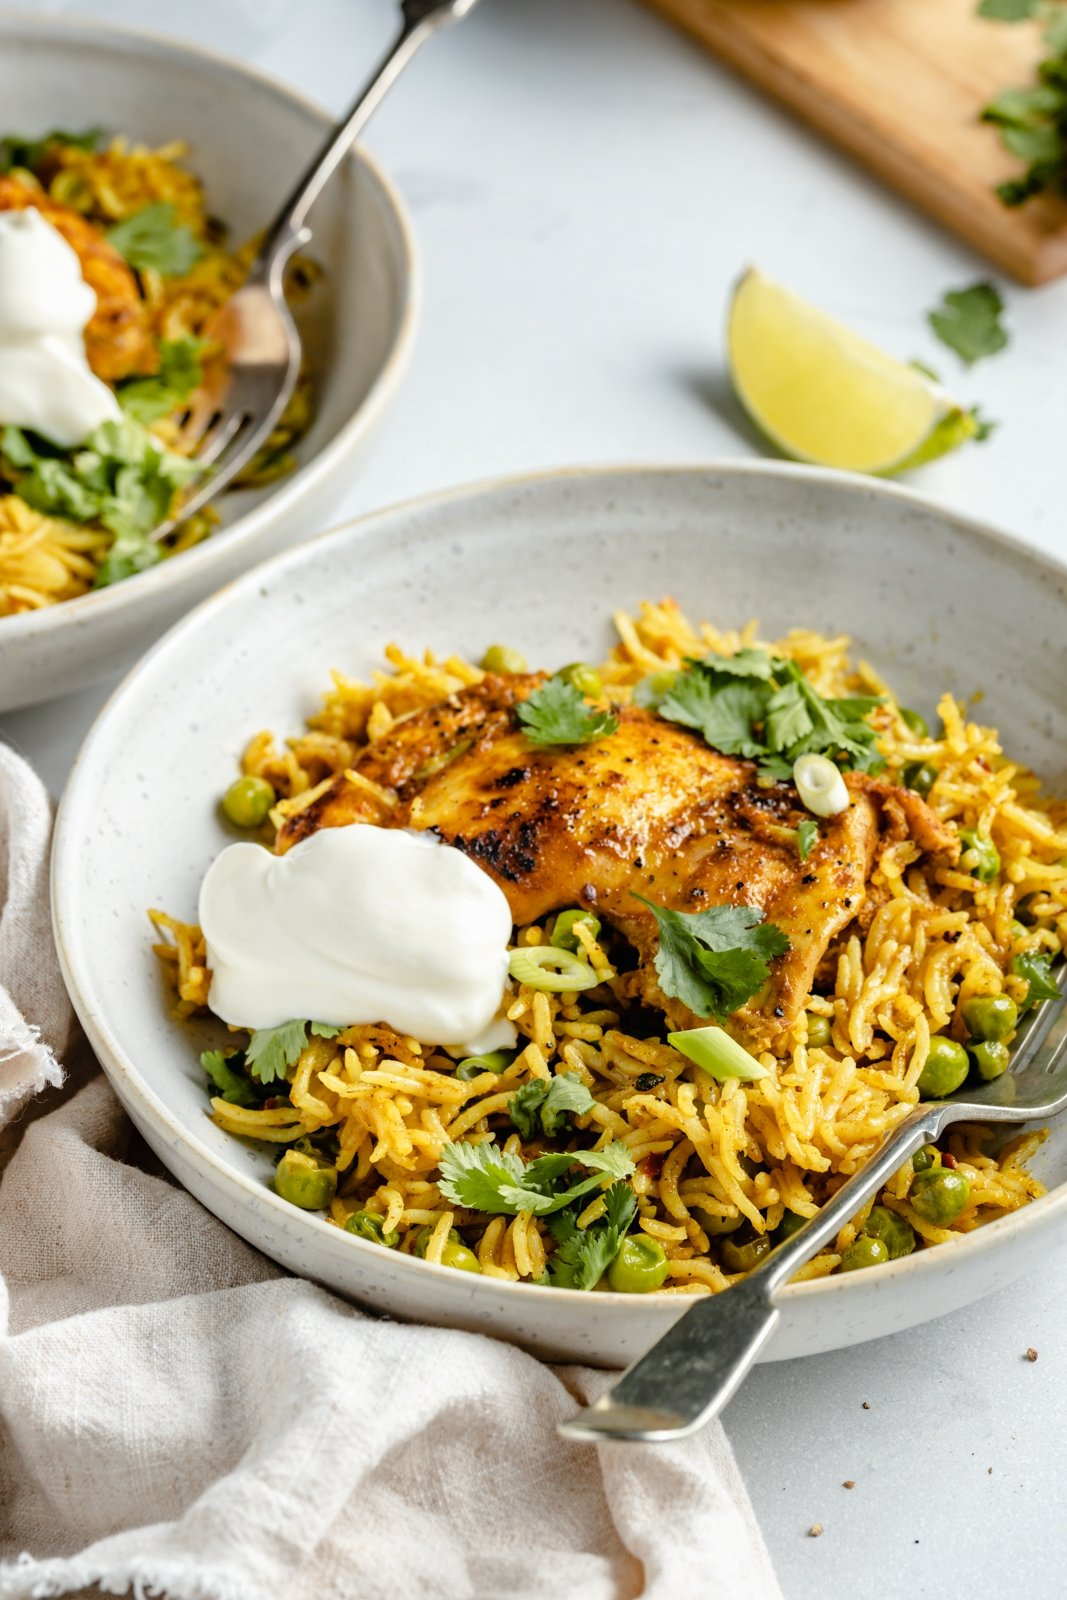 tandoori chicken with rice in a bowl topped with yogurt